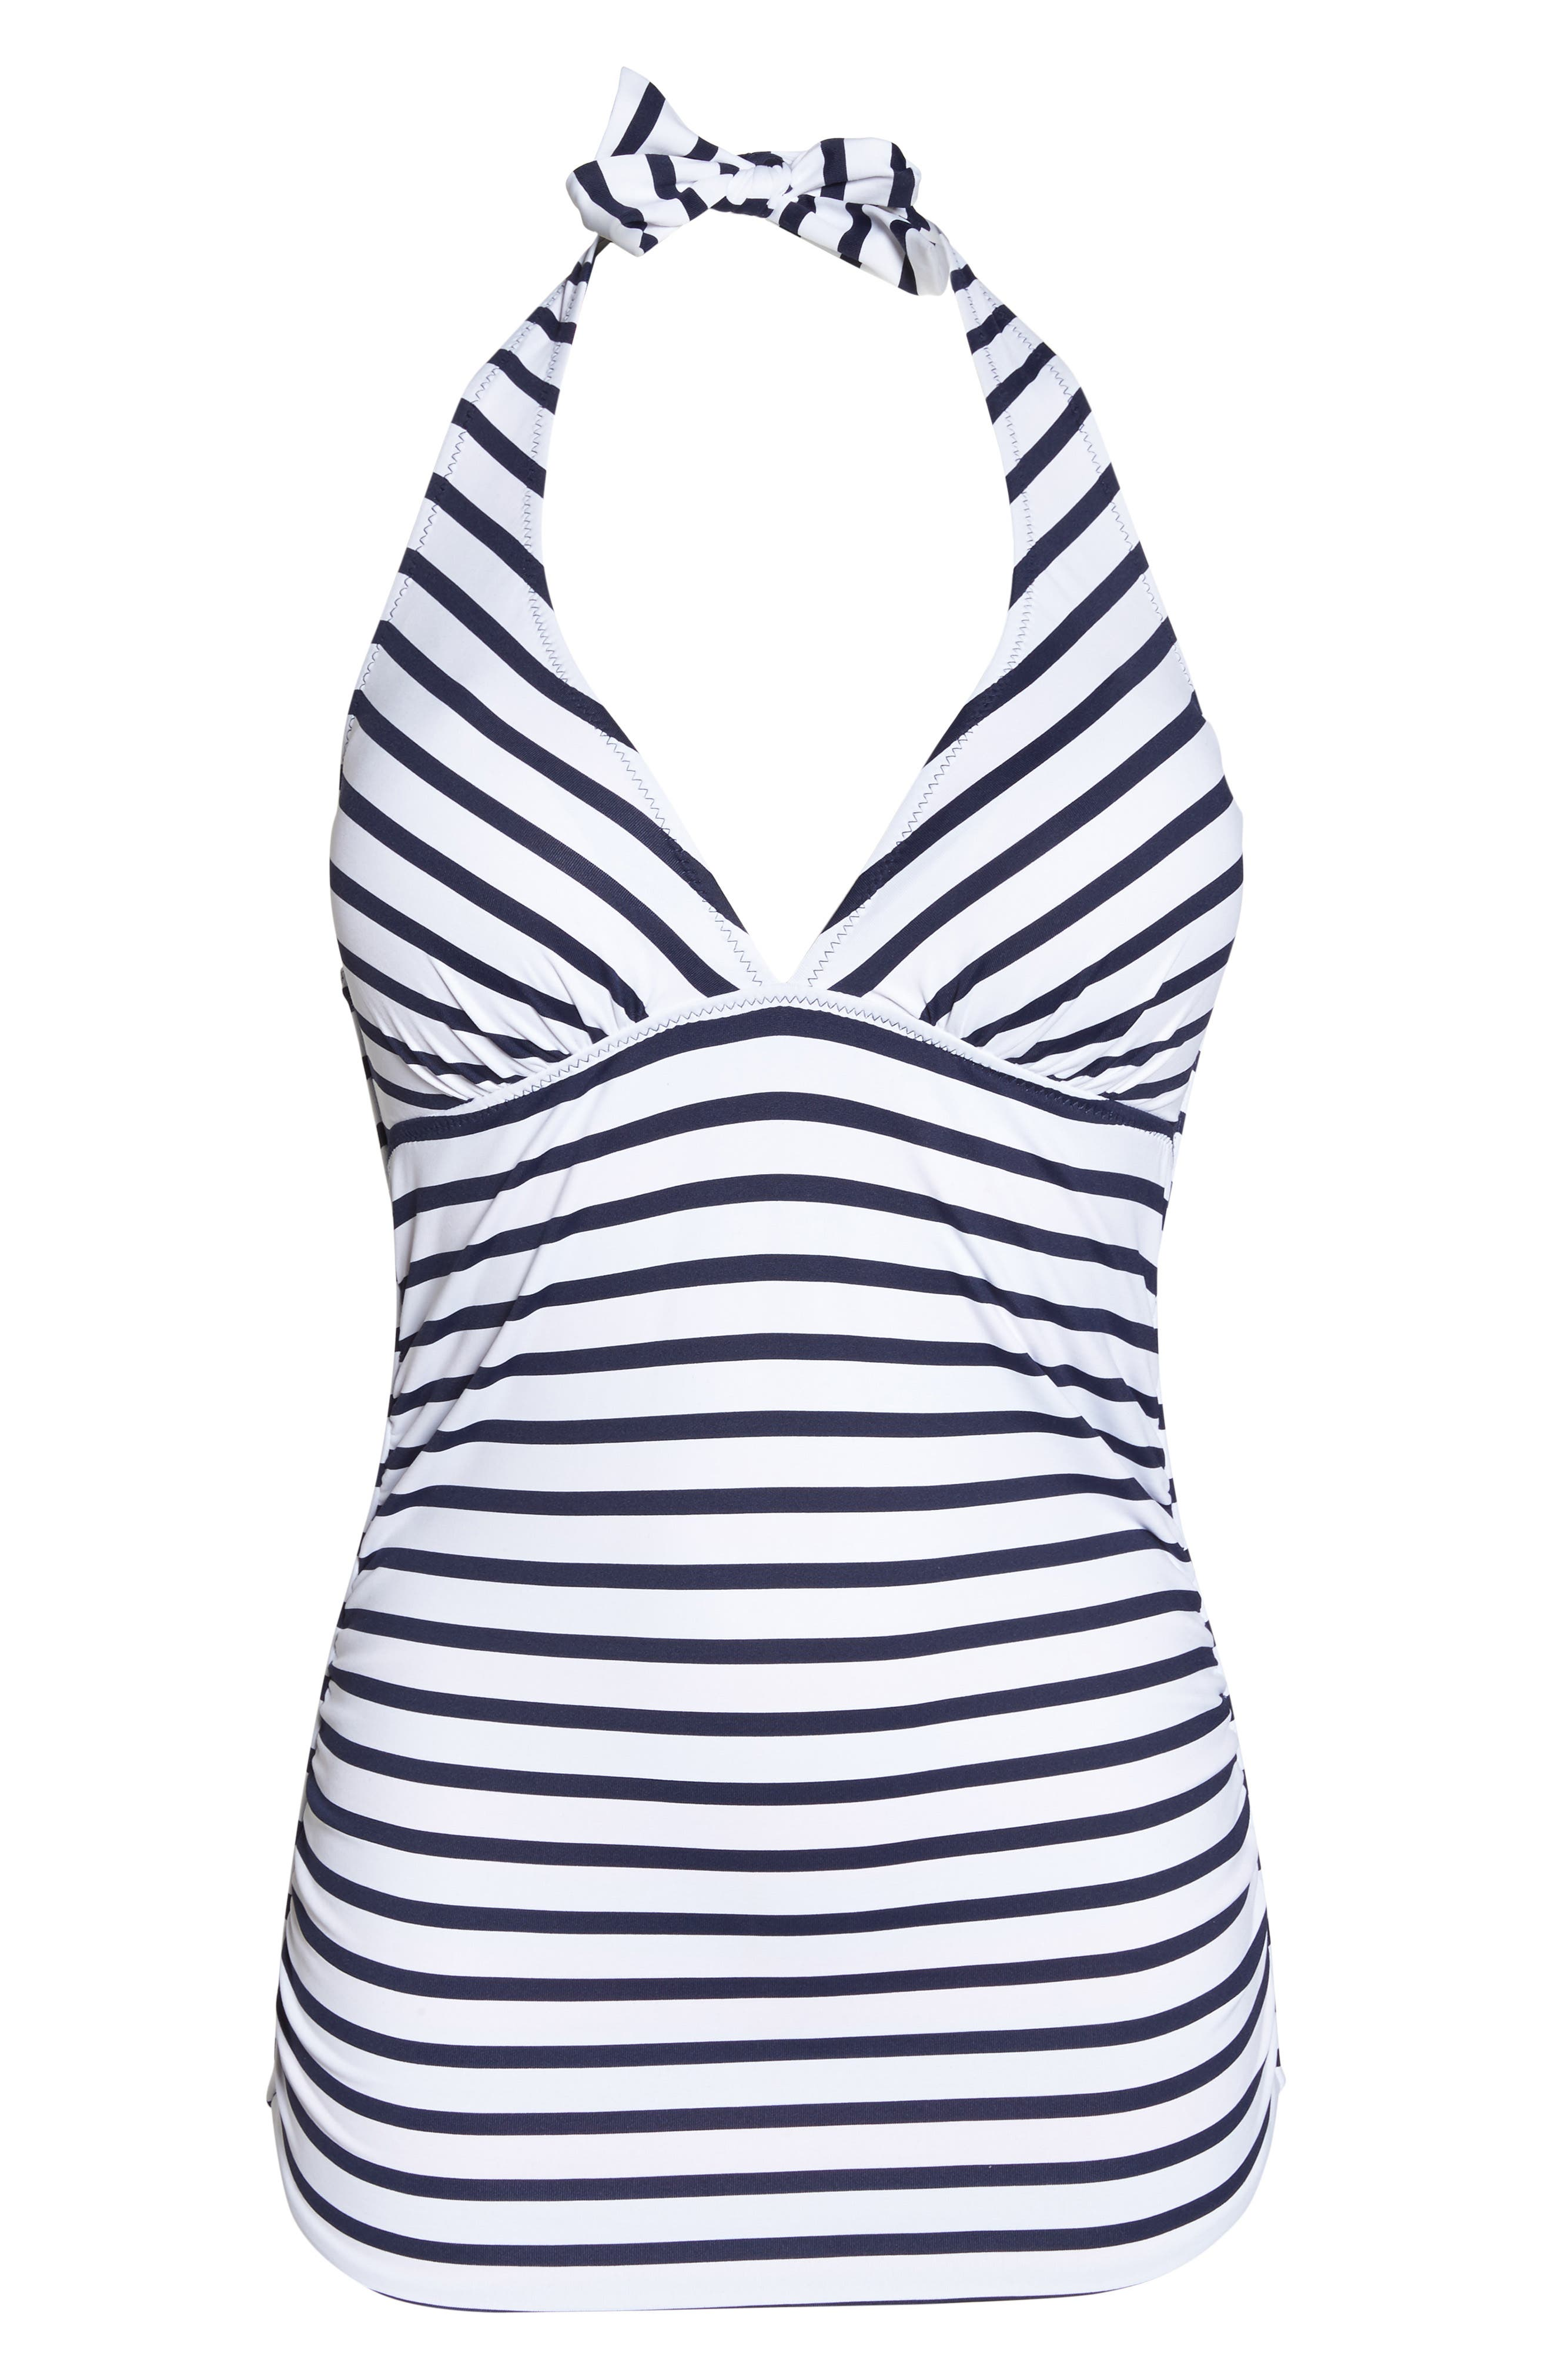 Channel Surfing Reversible Halter Tankini Top,                             Alternate thumbnail 8, color,                             Mare Blue